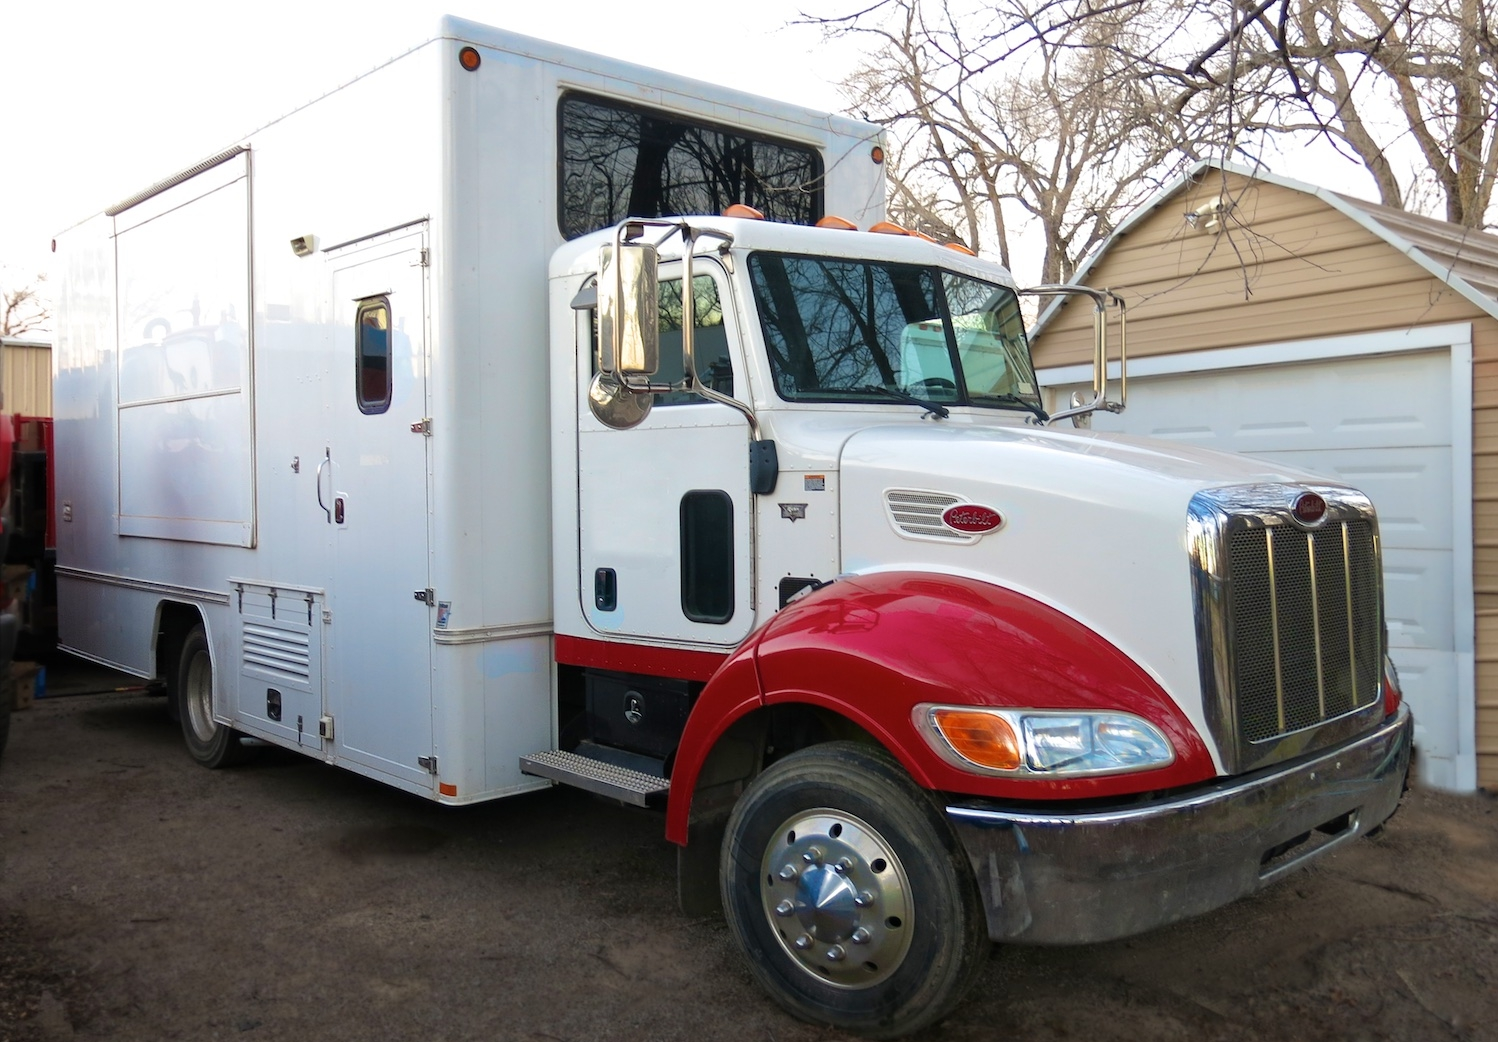 Mobile Office Trucks, large & small, with pop-outs. Designed for on location work space. Call Wayne Elliott for details (505) 328-0909.  ElliottLocationEquipment.com